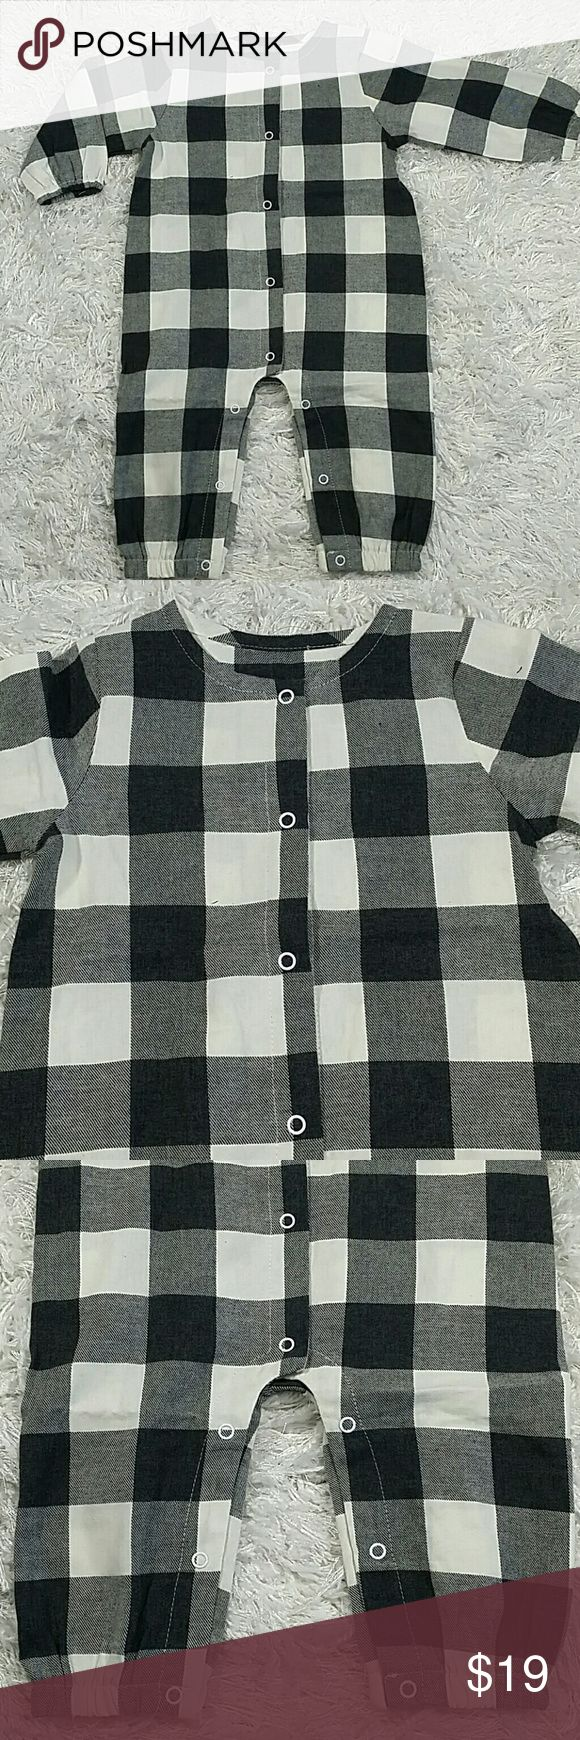 black checker bodysuit kids adorable and comfortable bodysuit with black and white checkers design